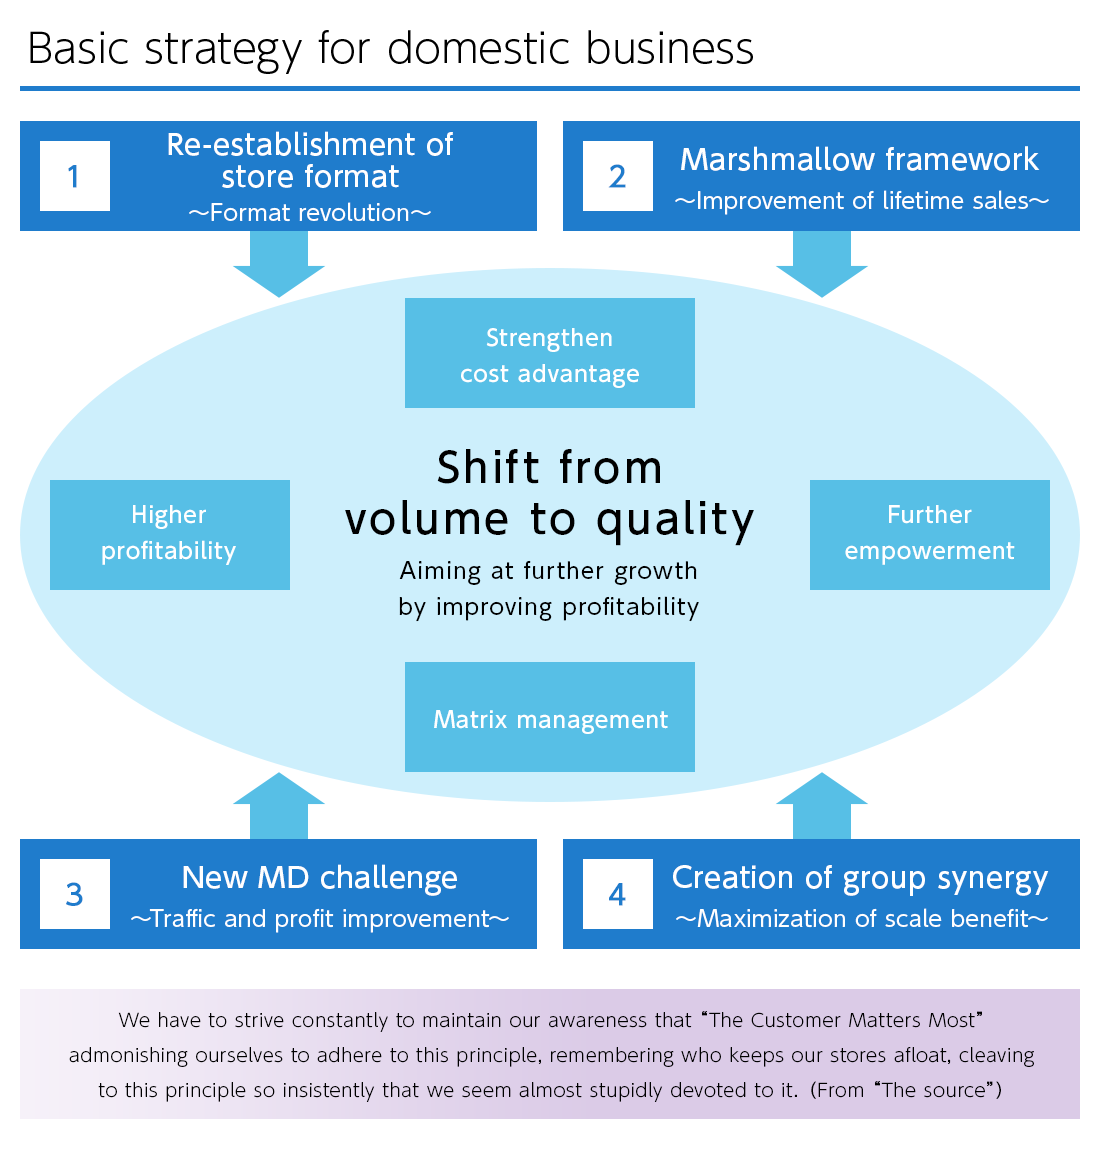 Basic strategy for domestic business